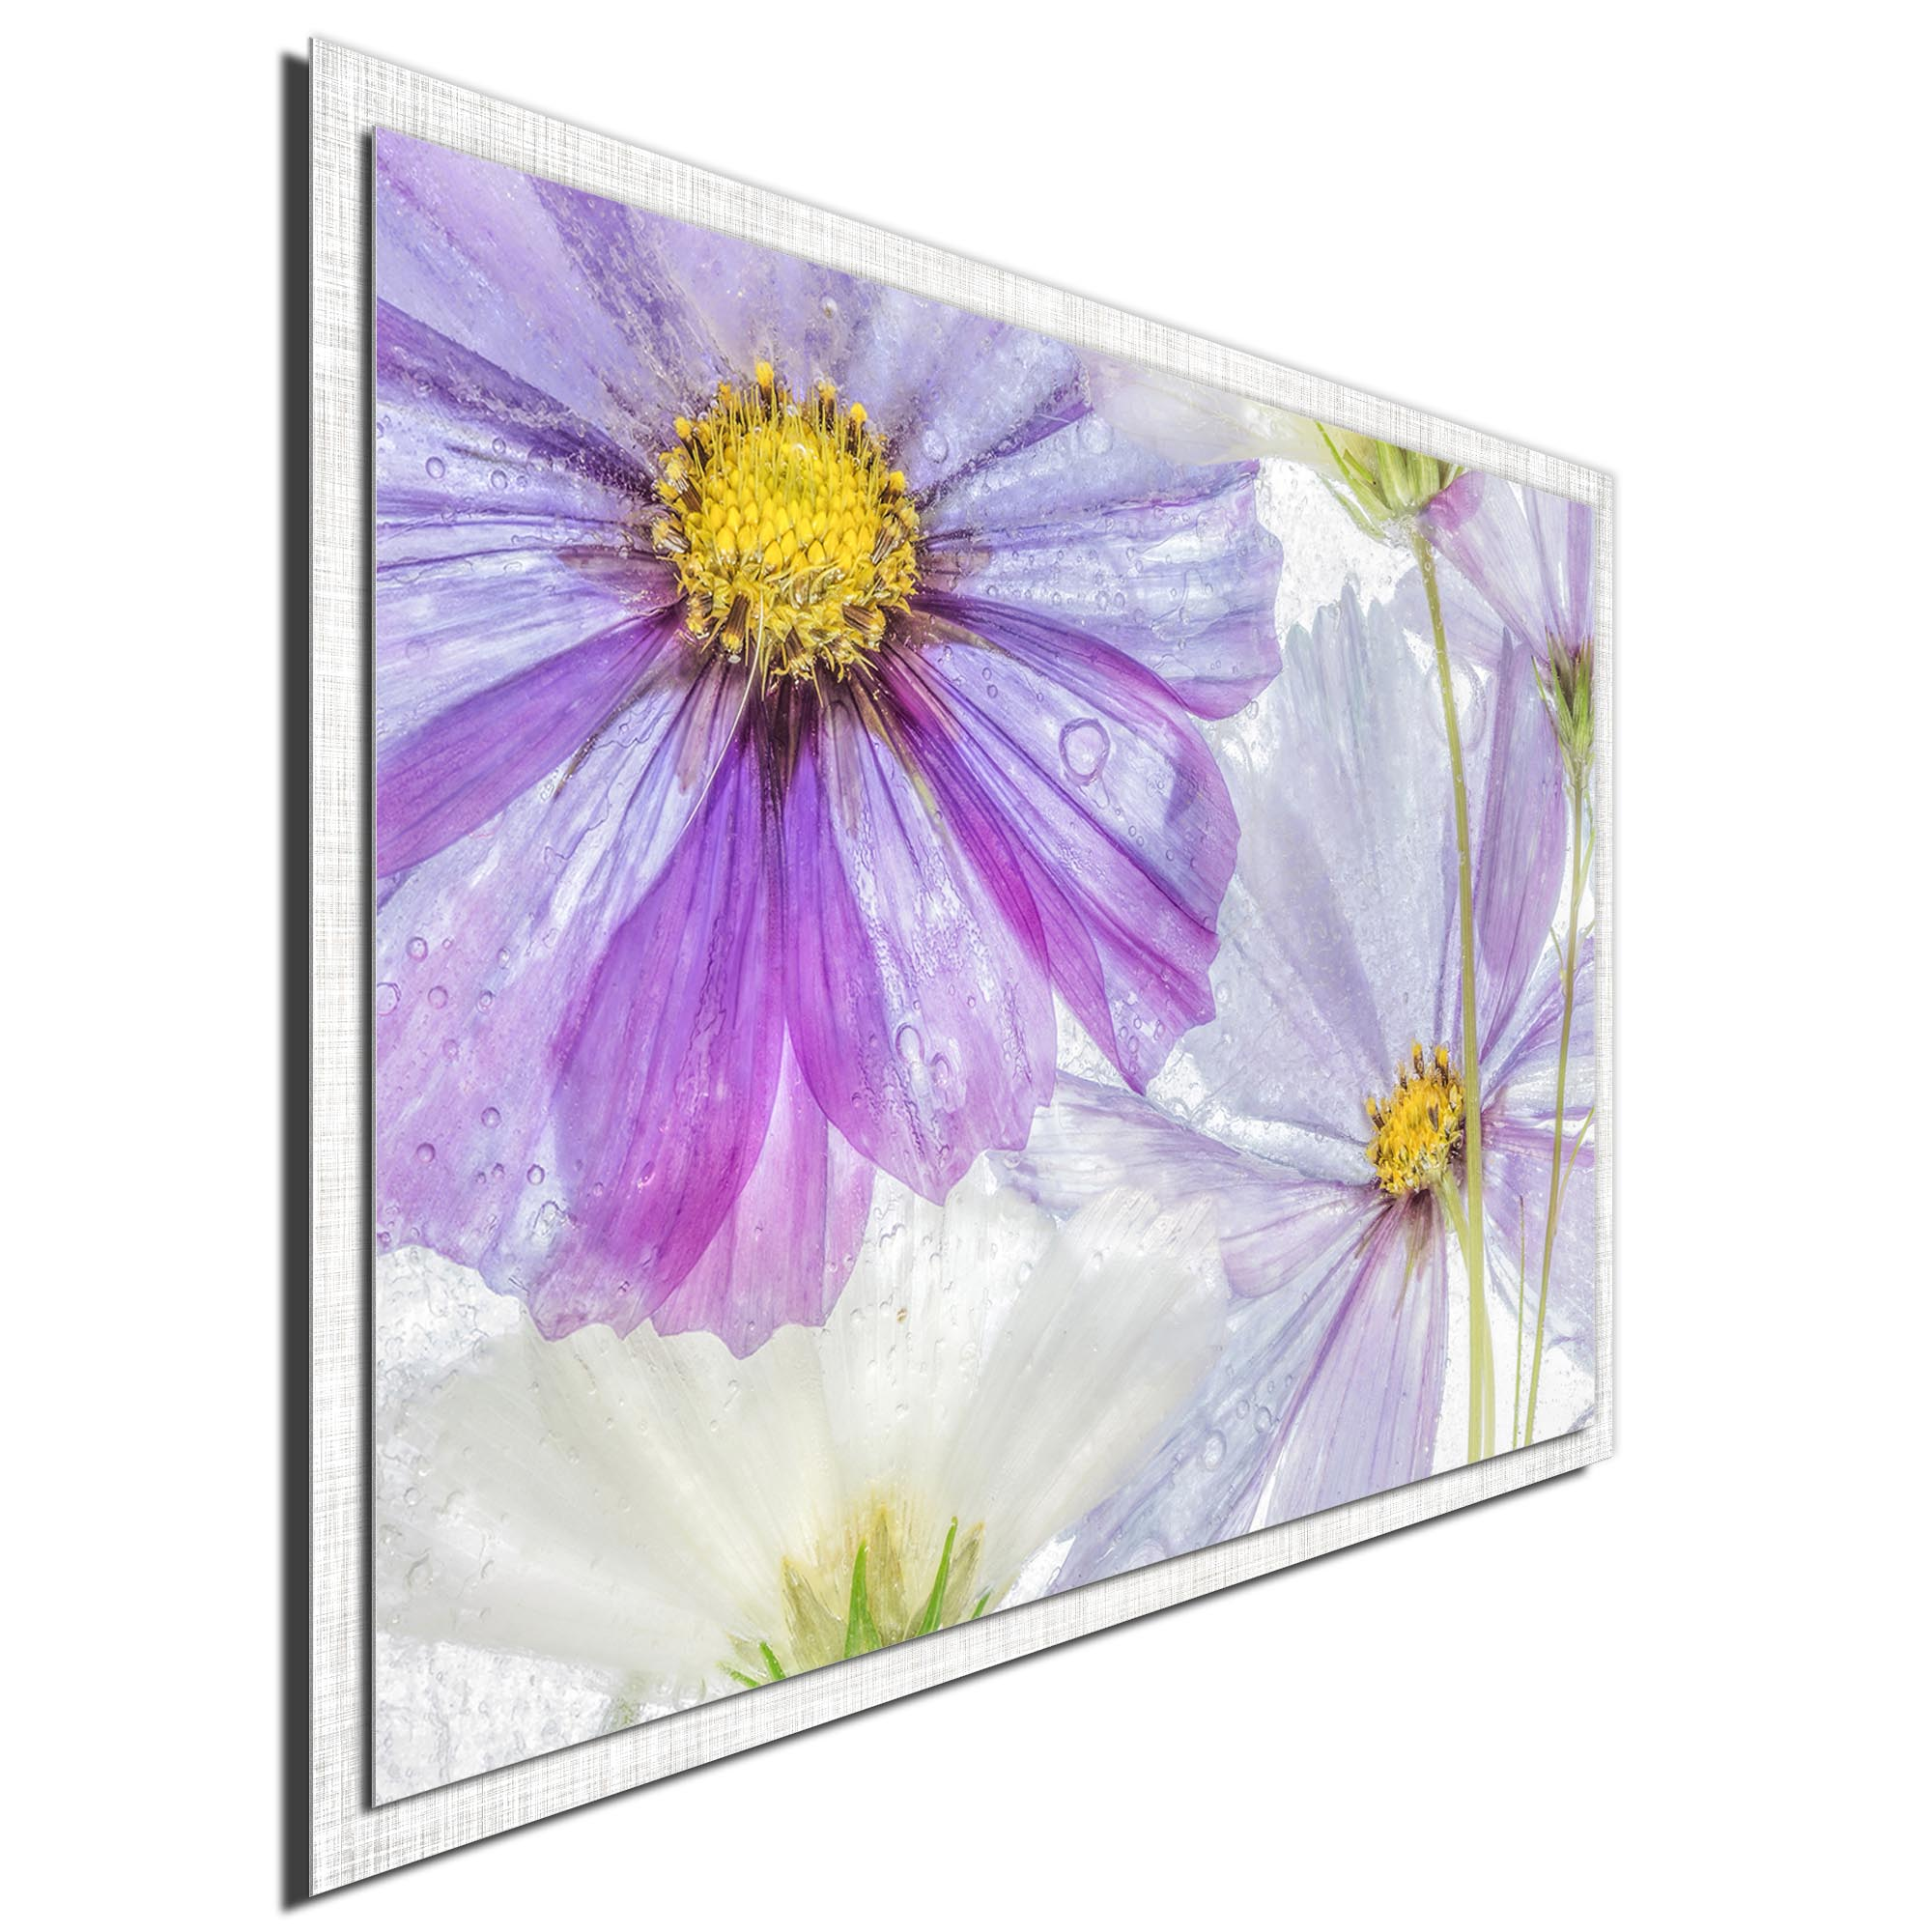 Cosmos Cool by Mandy Disher - Modern Farmhouse Floral on Metal - Image 2